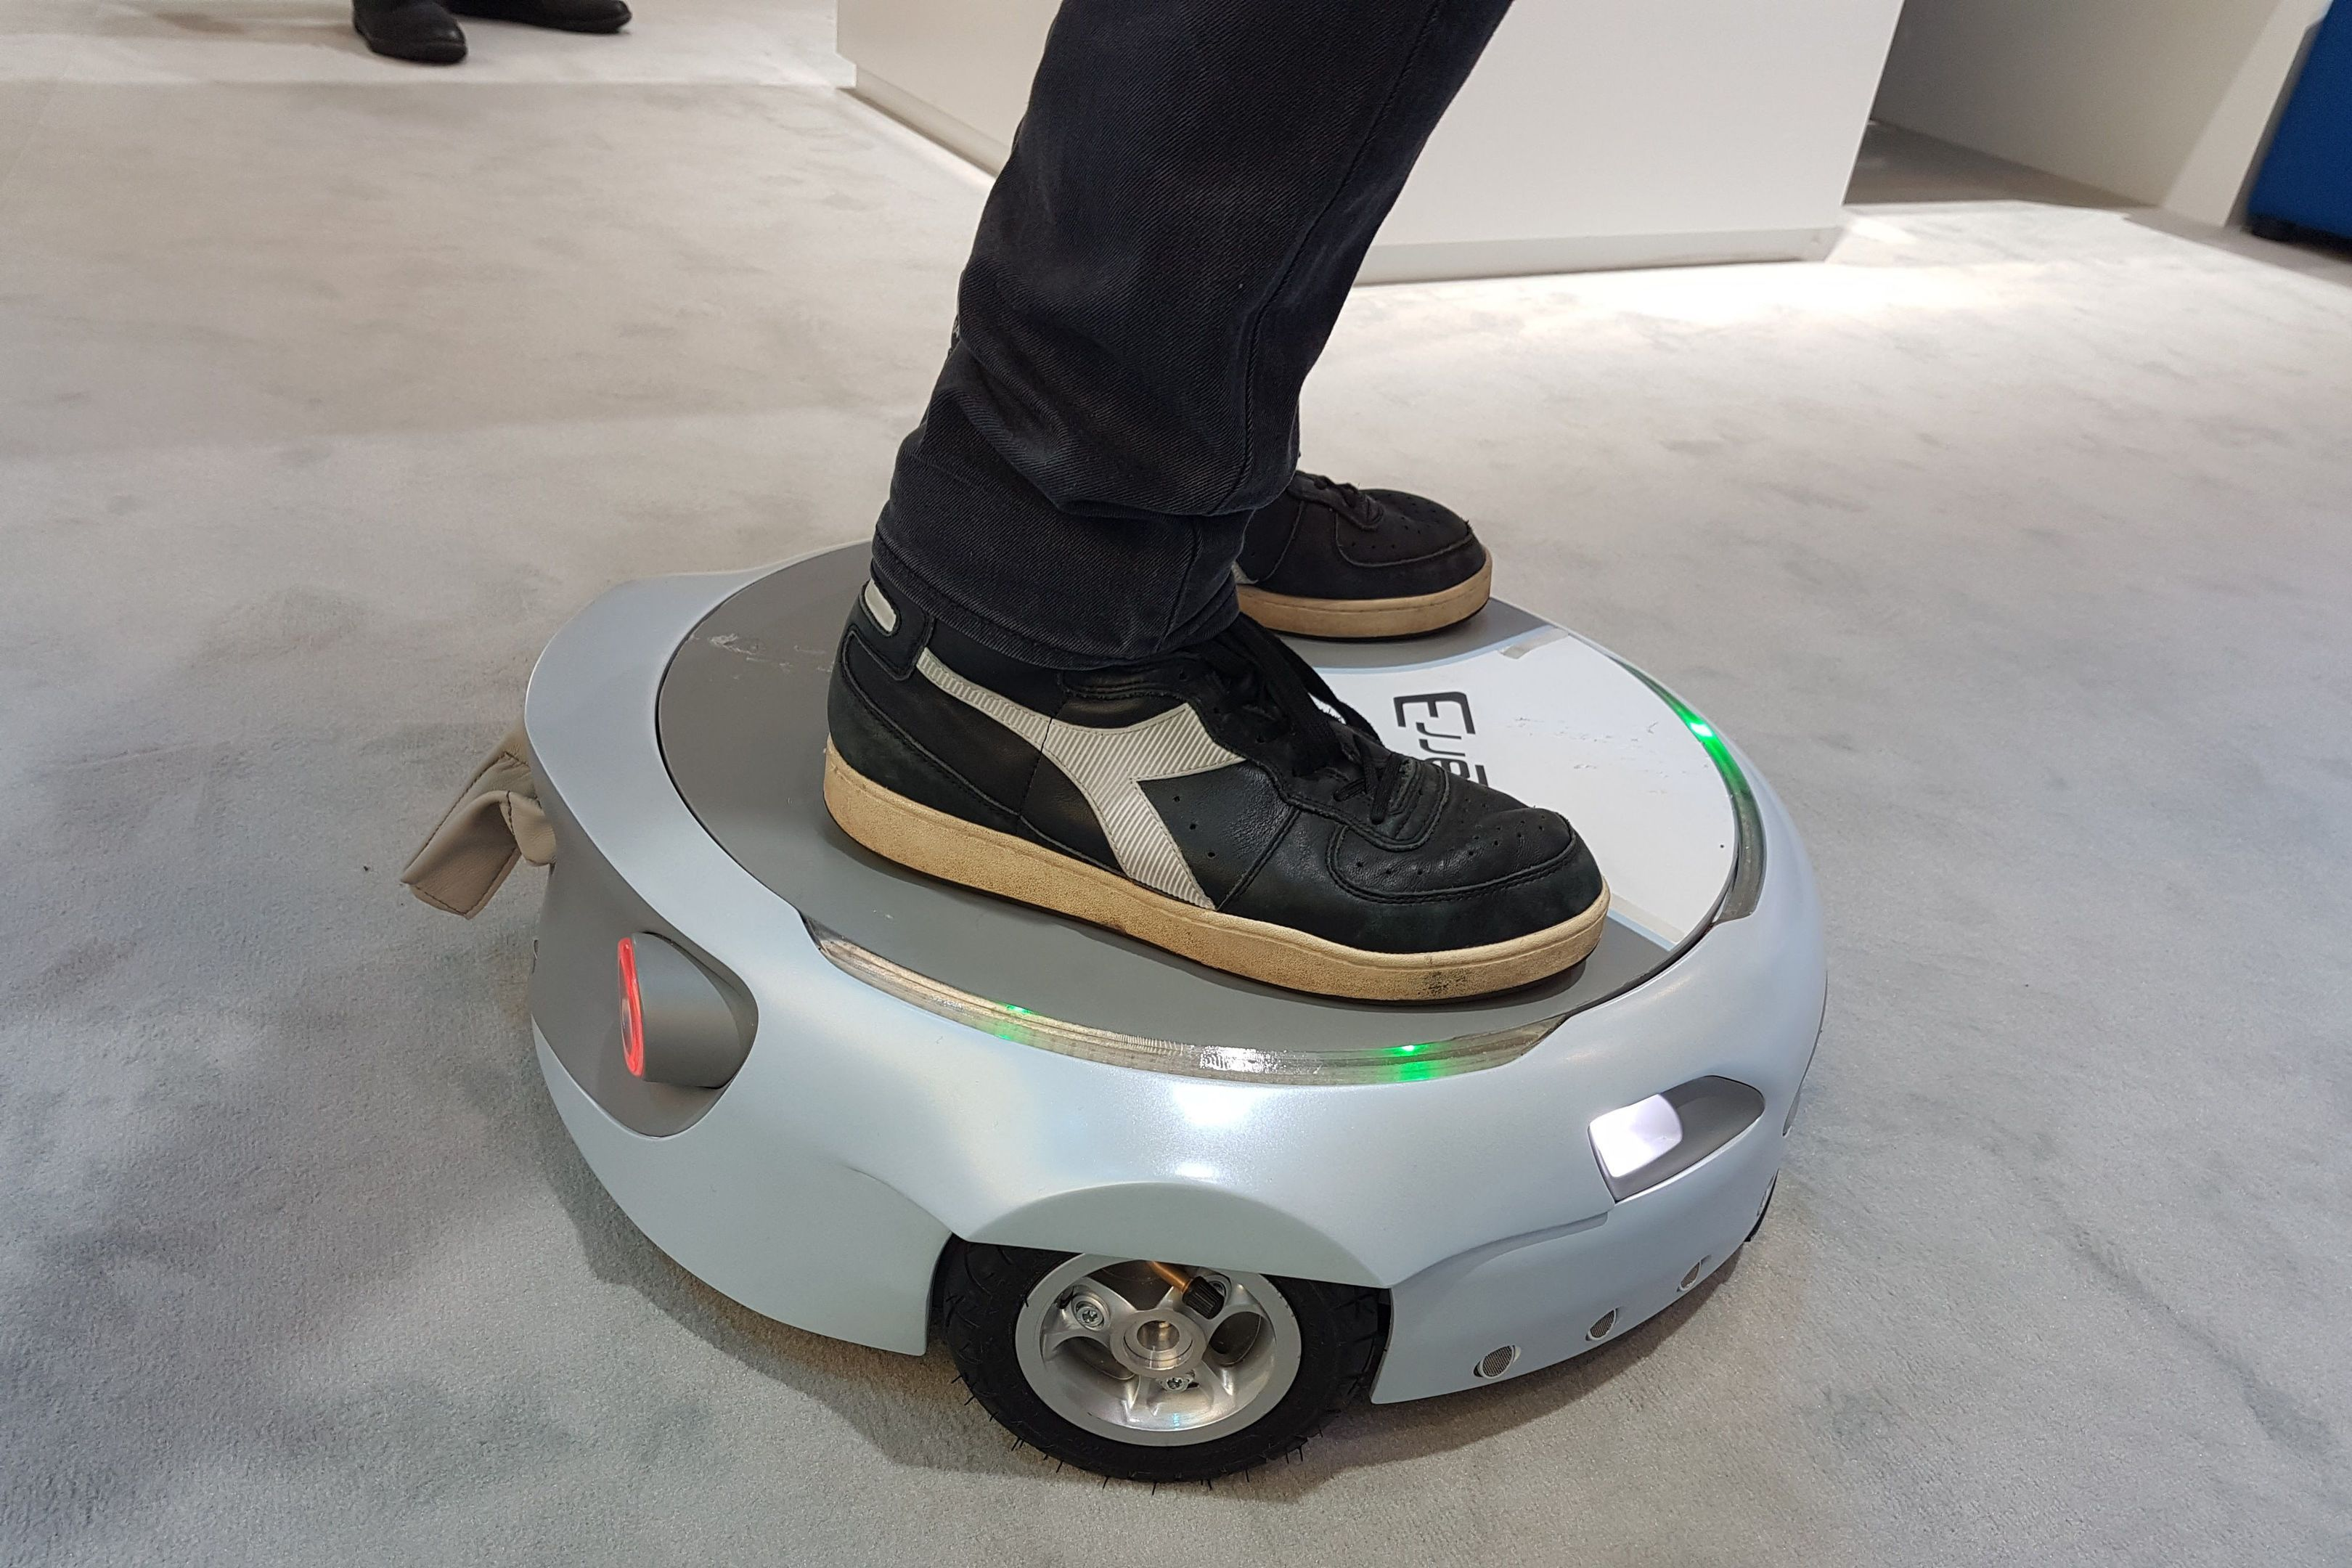 lacoste shoes unboxing hoverboard video flight in an aerostar